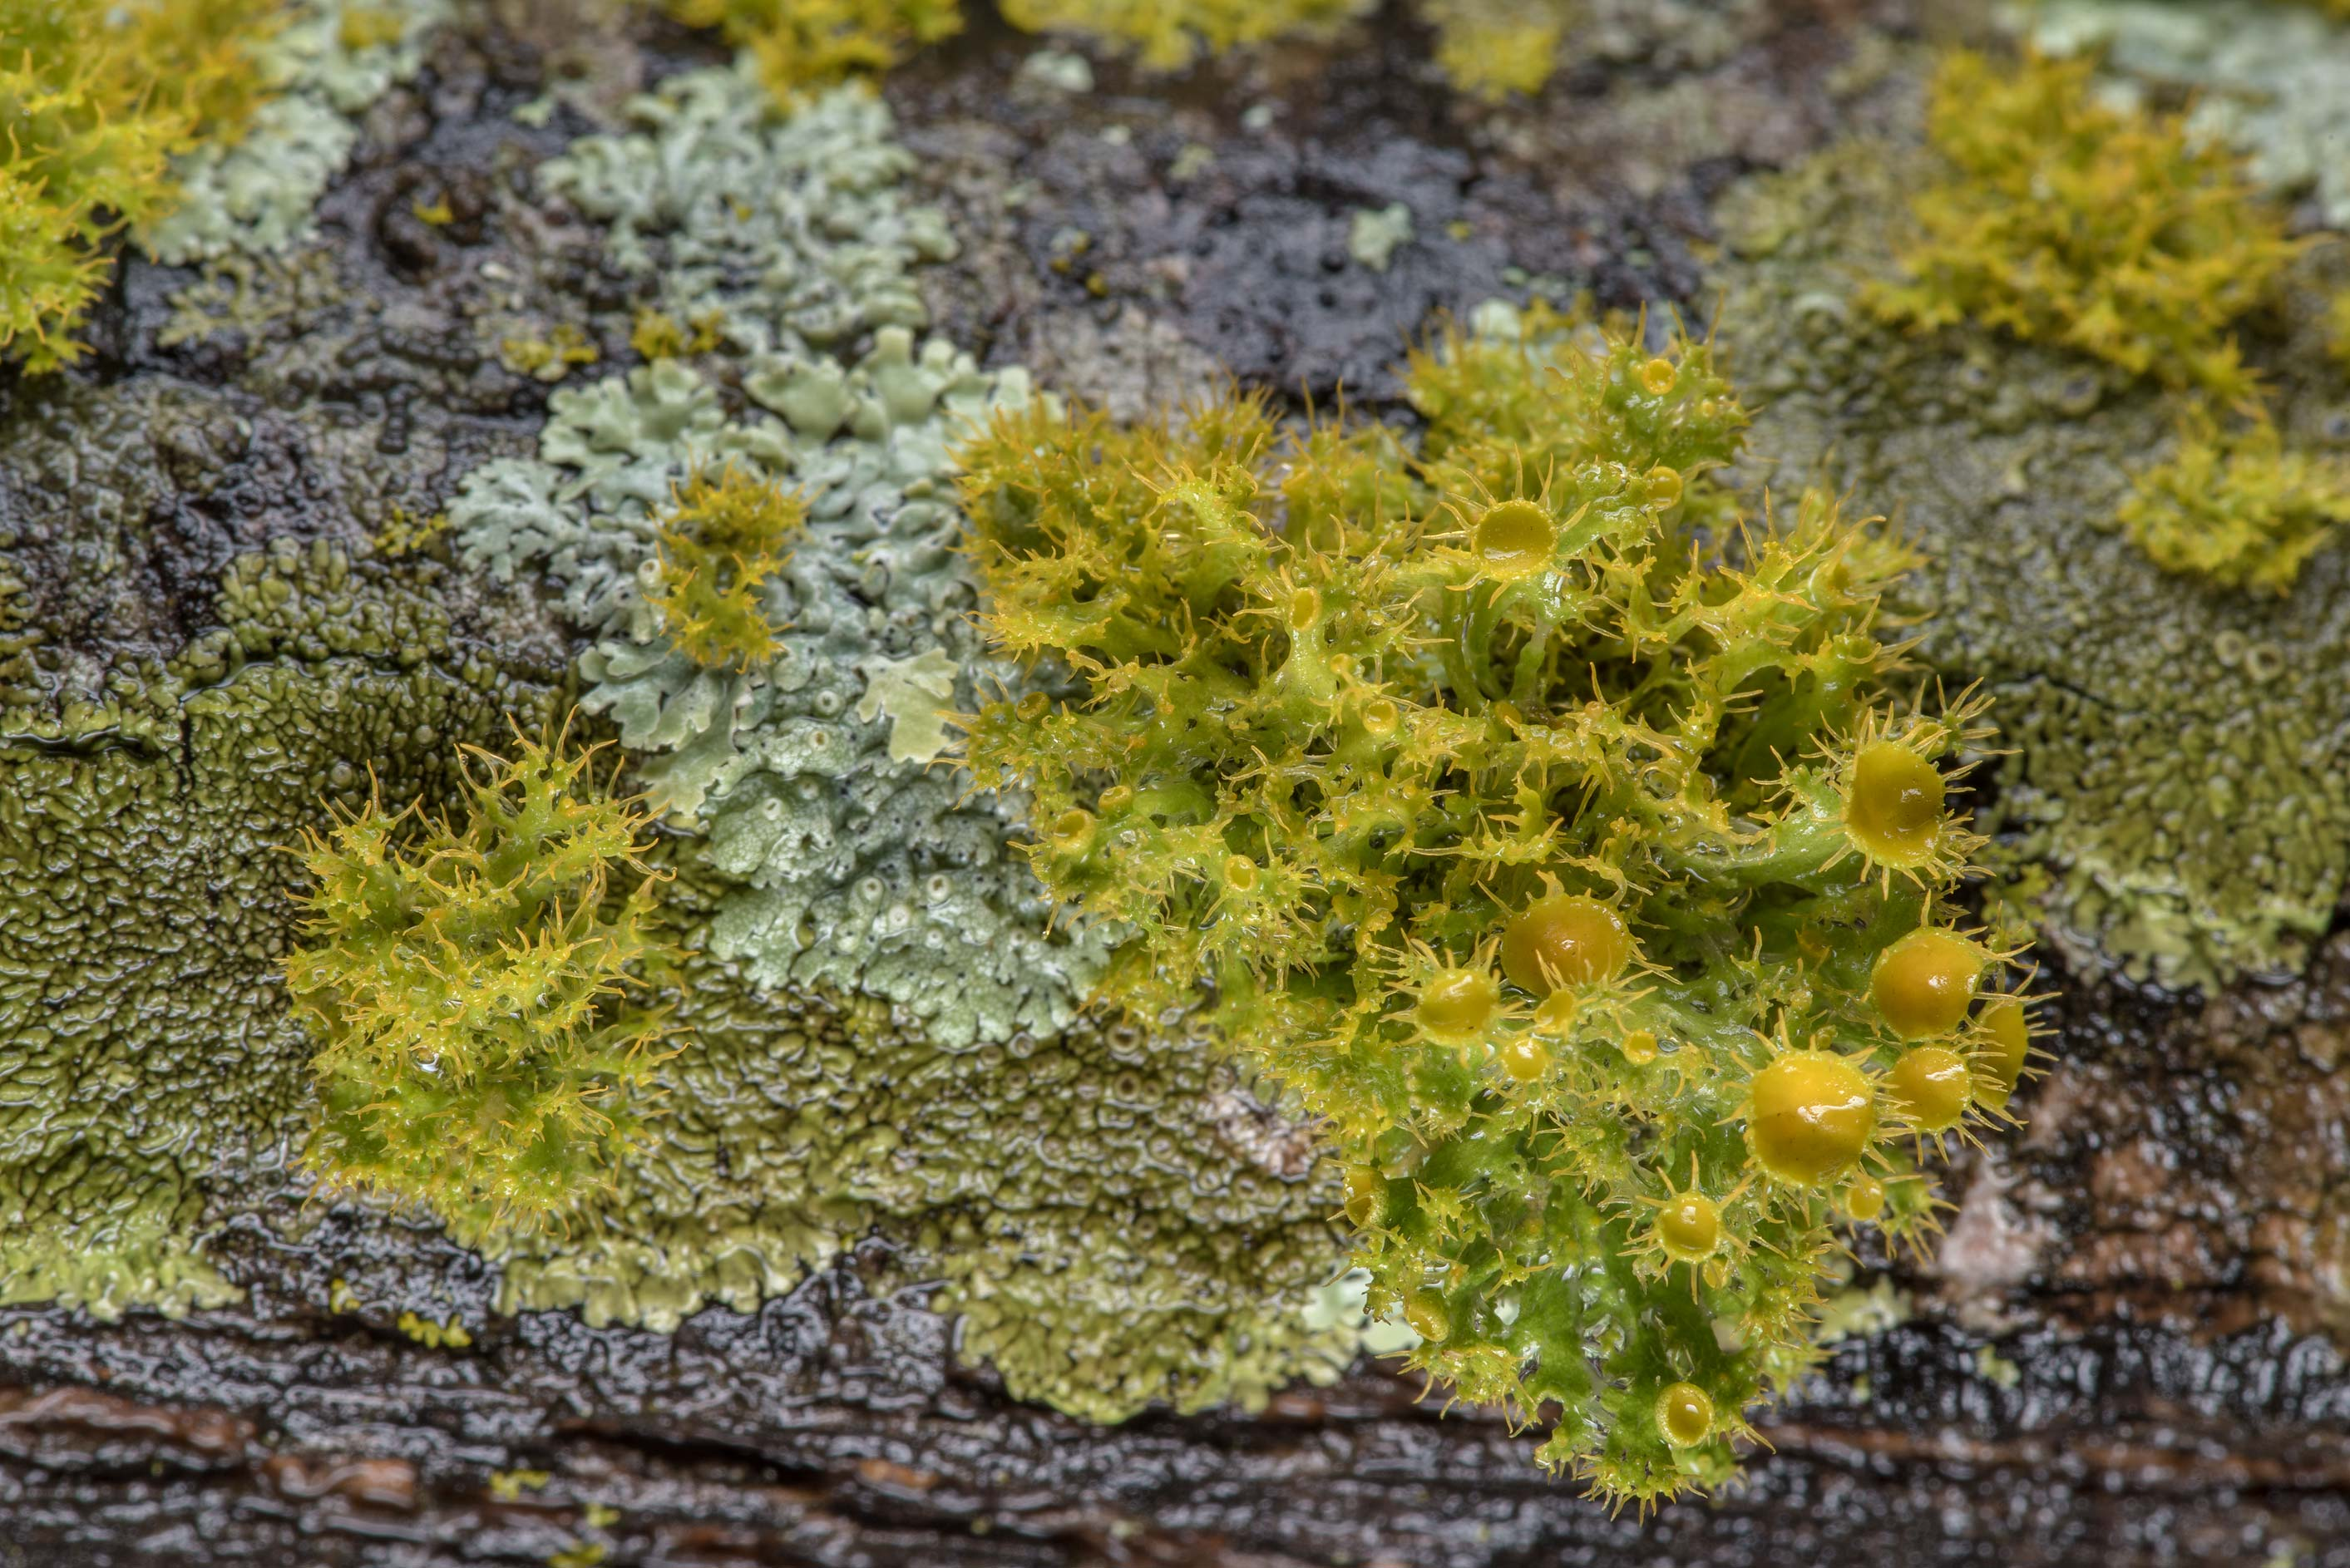 Golden eye lichen (Teloschistes chrysophthalmus...M University. College Station, Texas